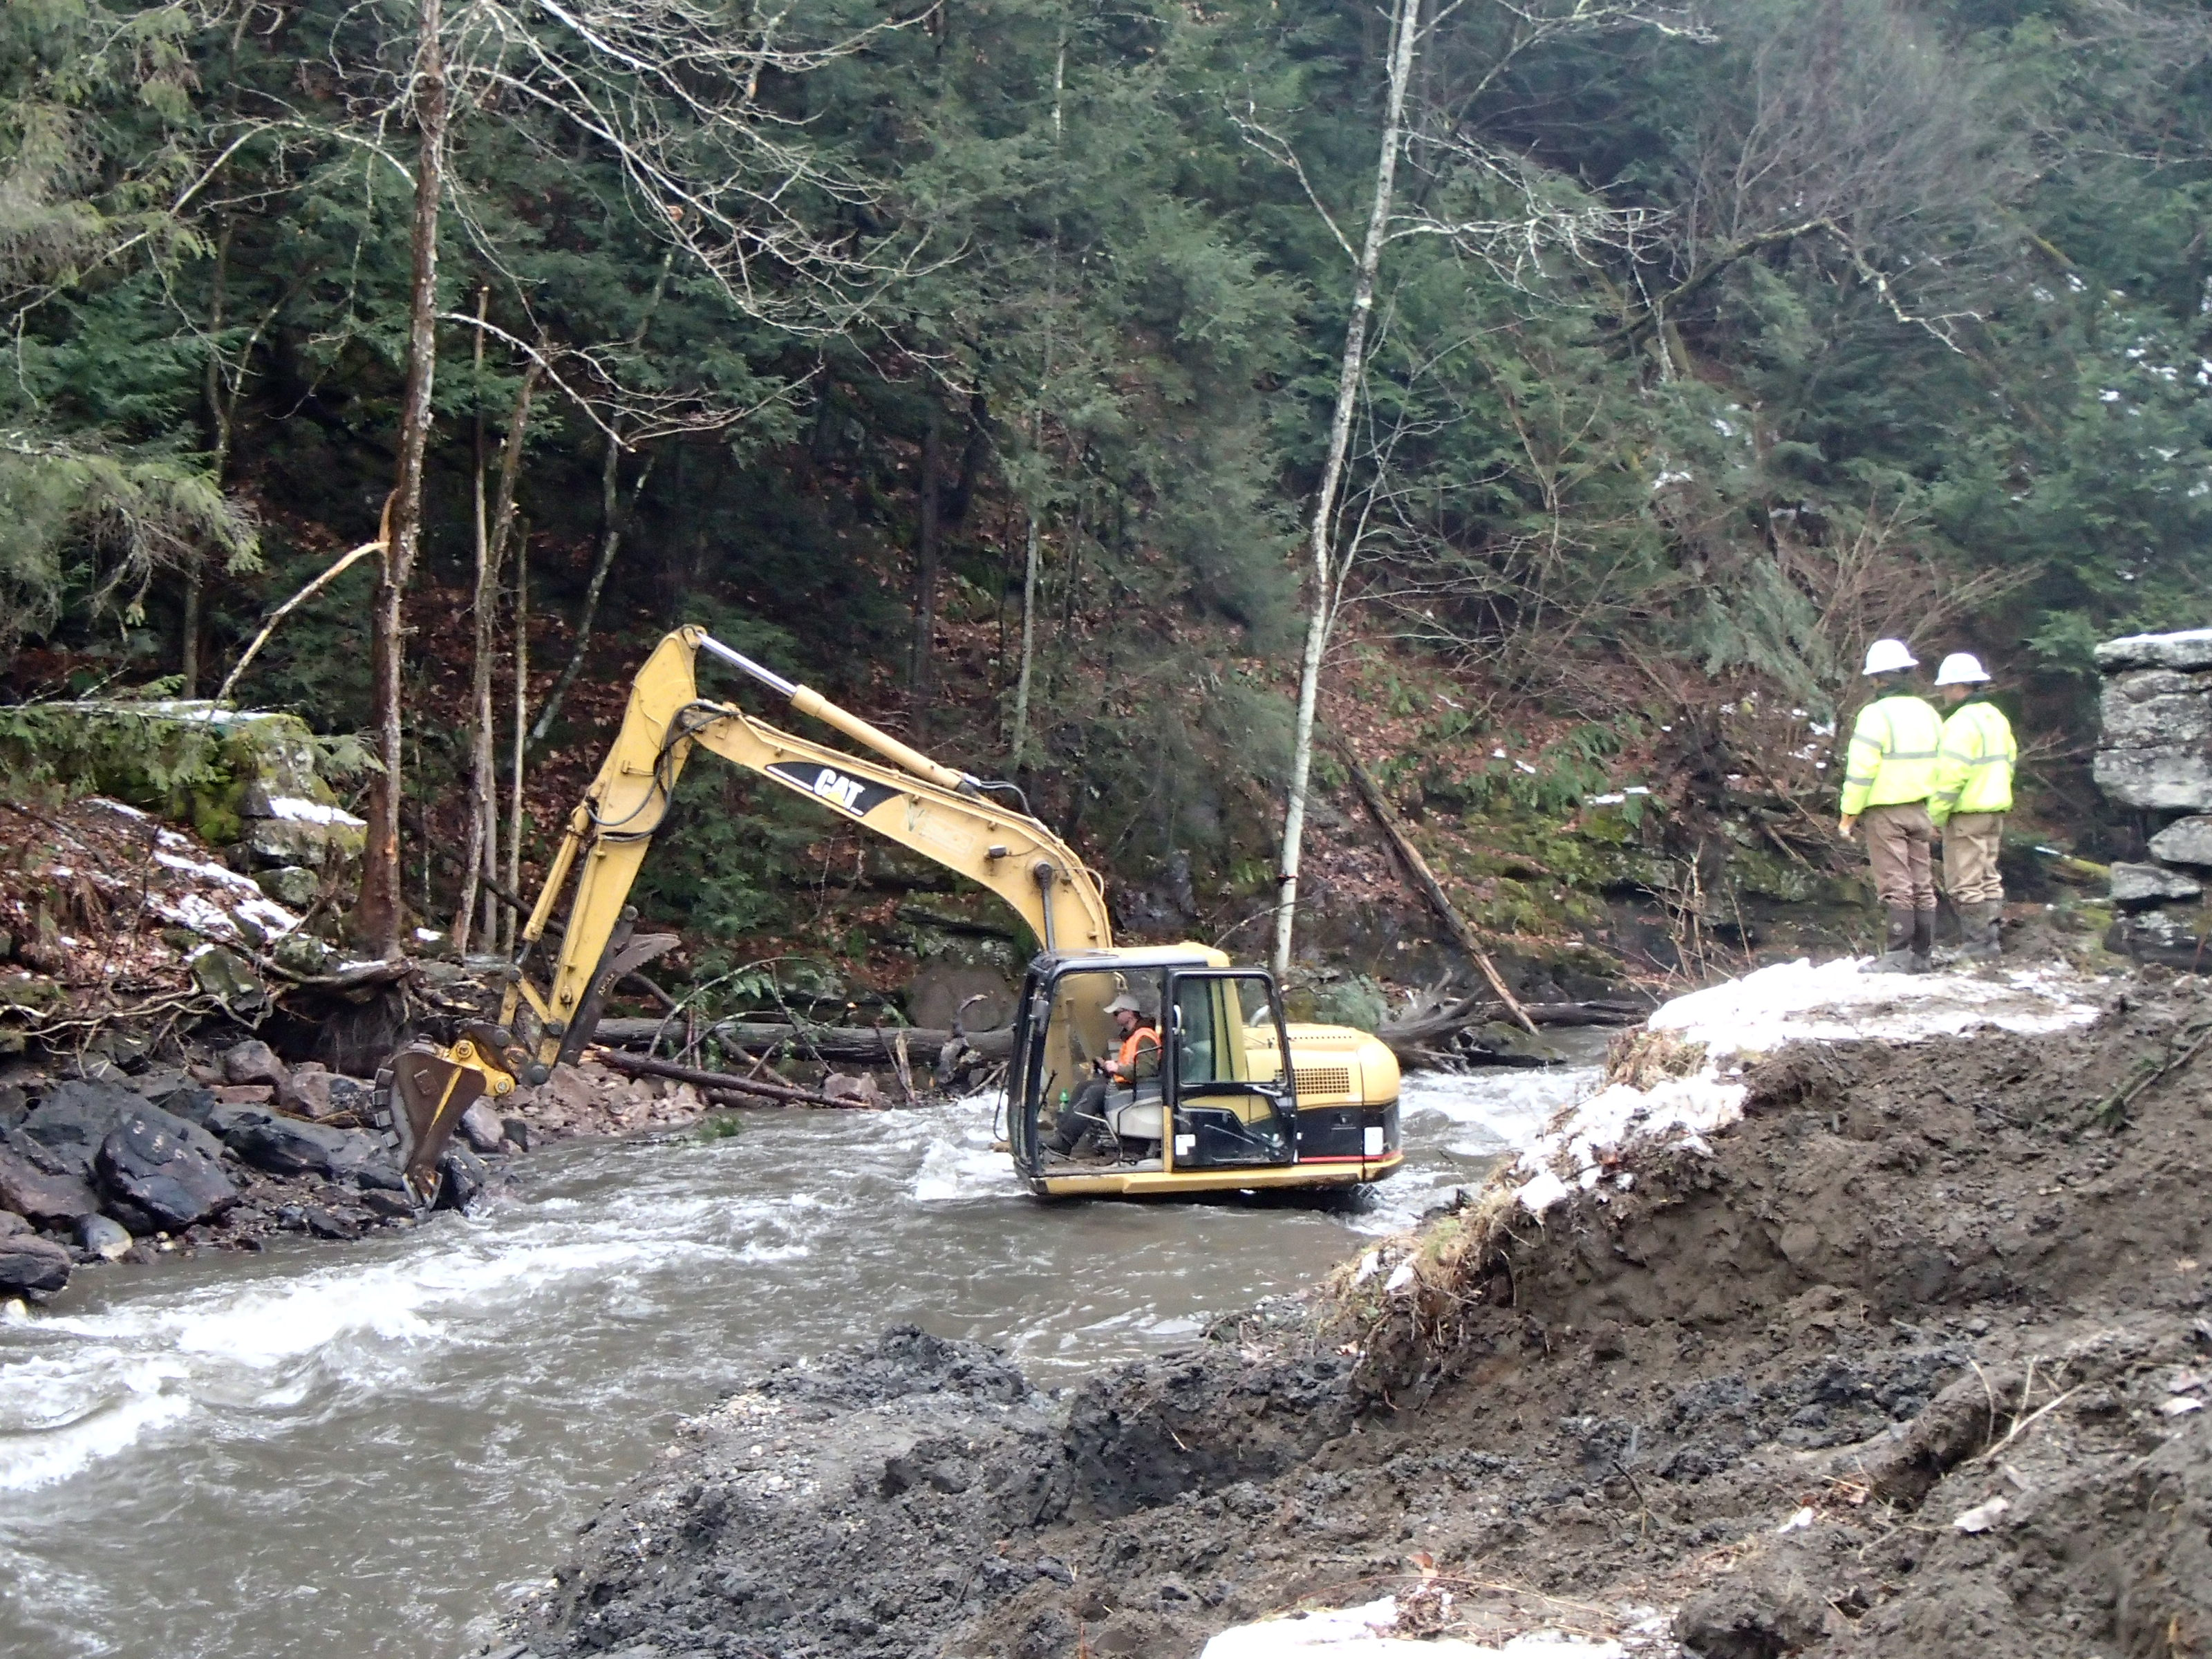 Dam removal at Fall River in Greenfield, MA